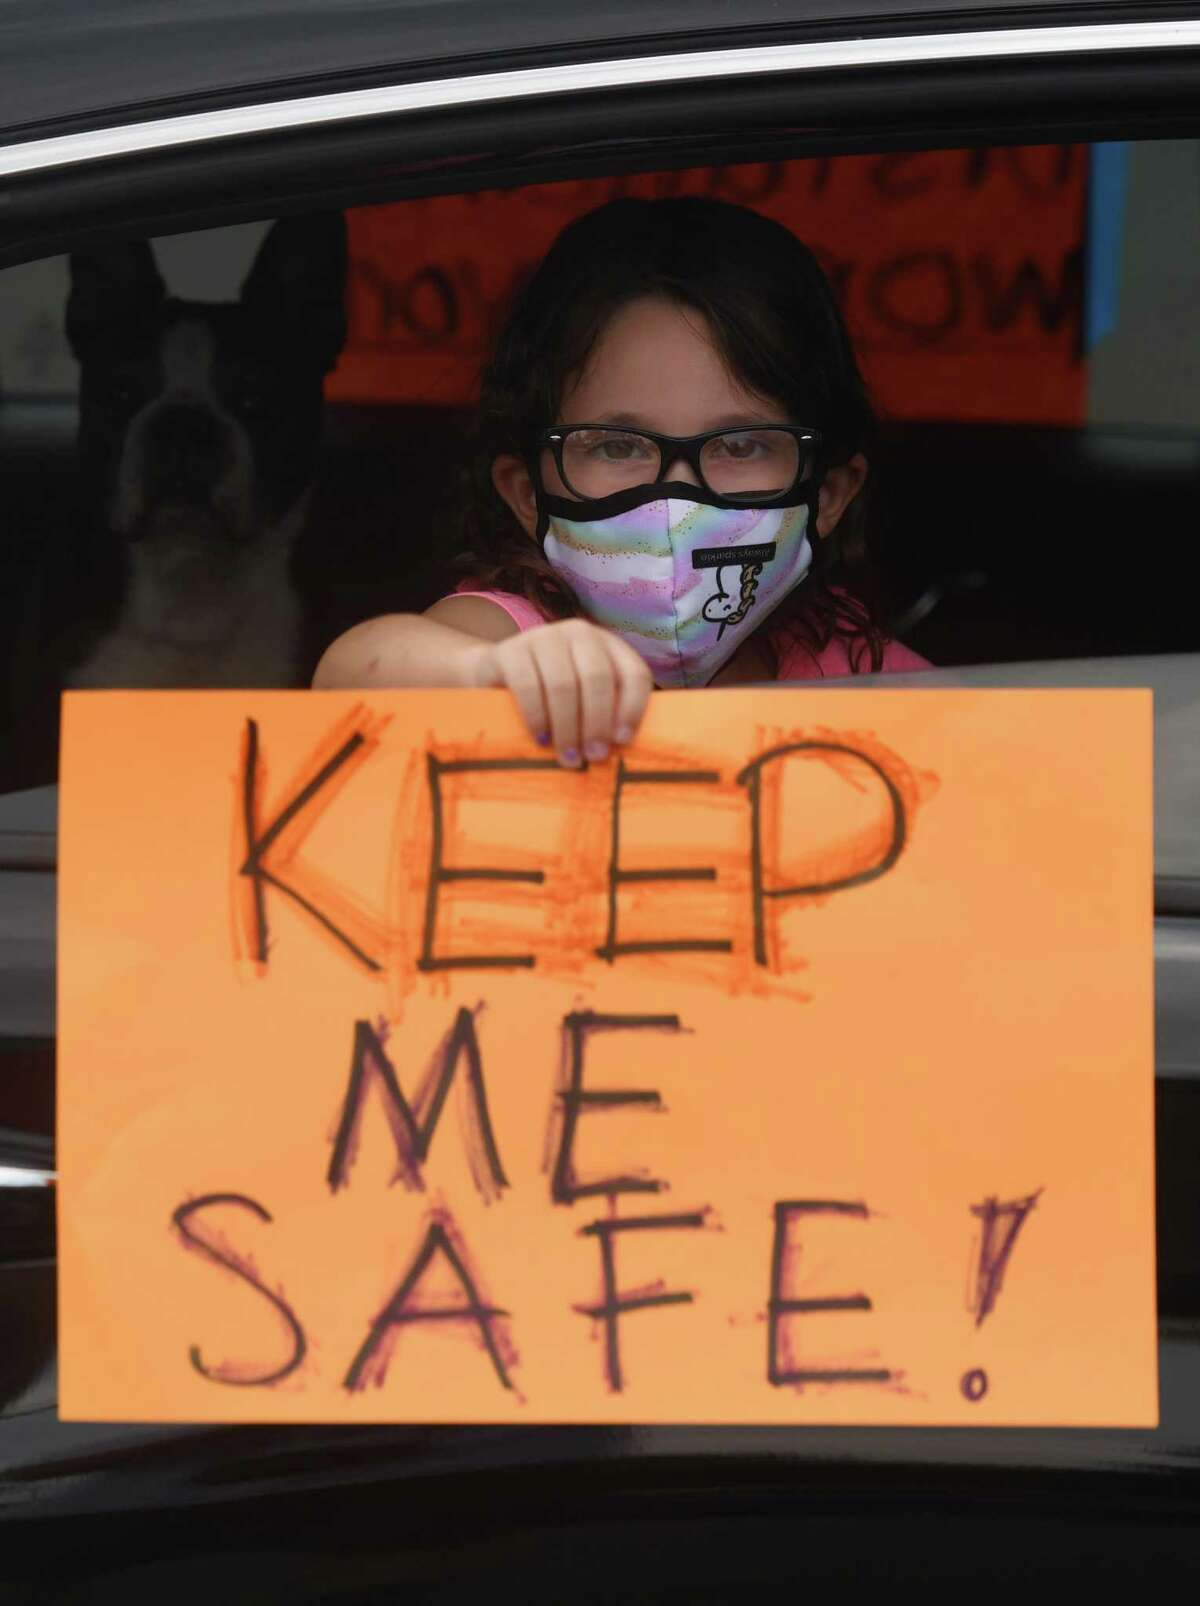 A student holds a sign in the teachers' protest caravan in the Horseneck Lane parking lot in Greenwich on July 30.